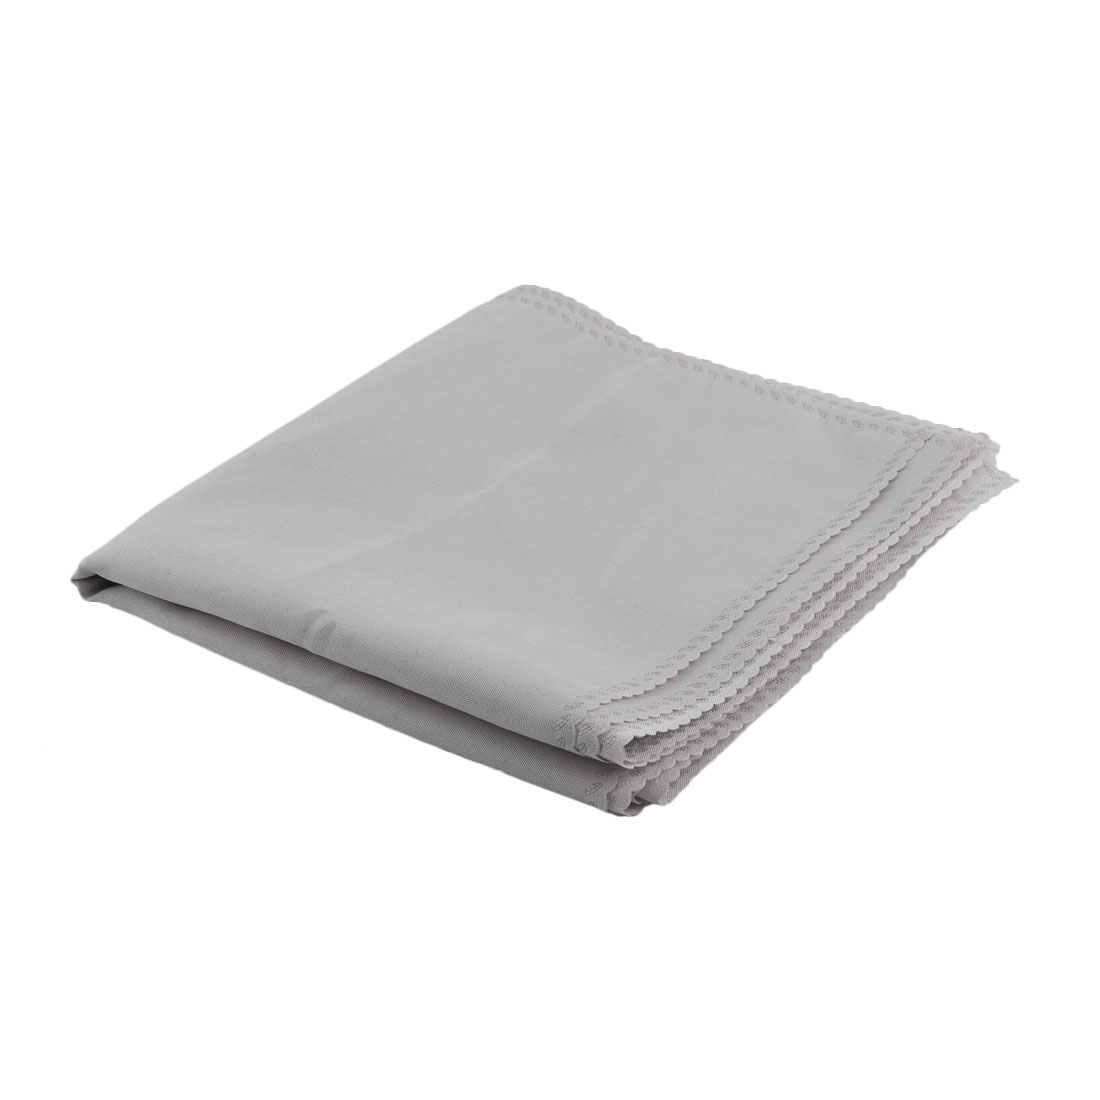 Kitchen Dining Room Fabric Stain-resistant Table Placemat Eat Mat Gray 6 Pcs